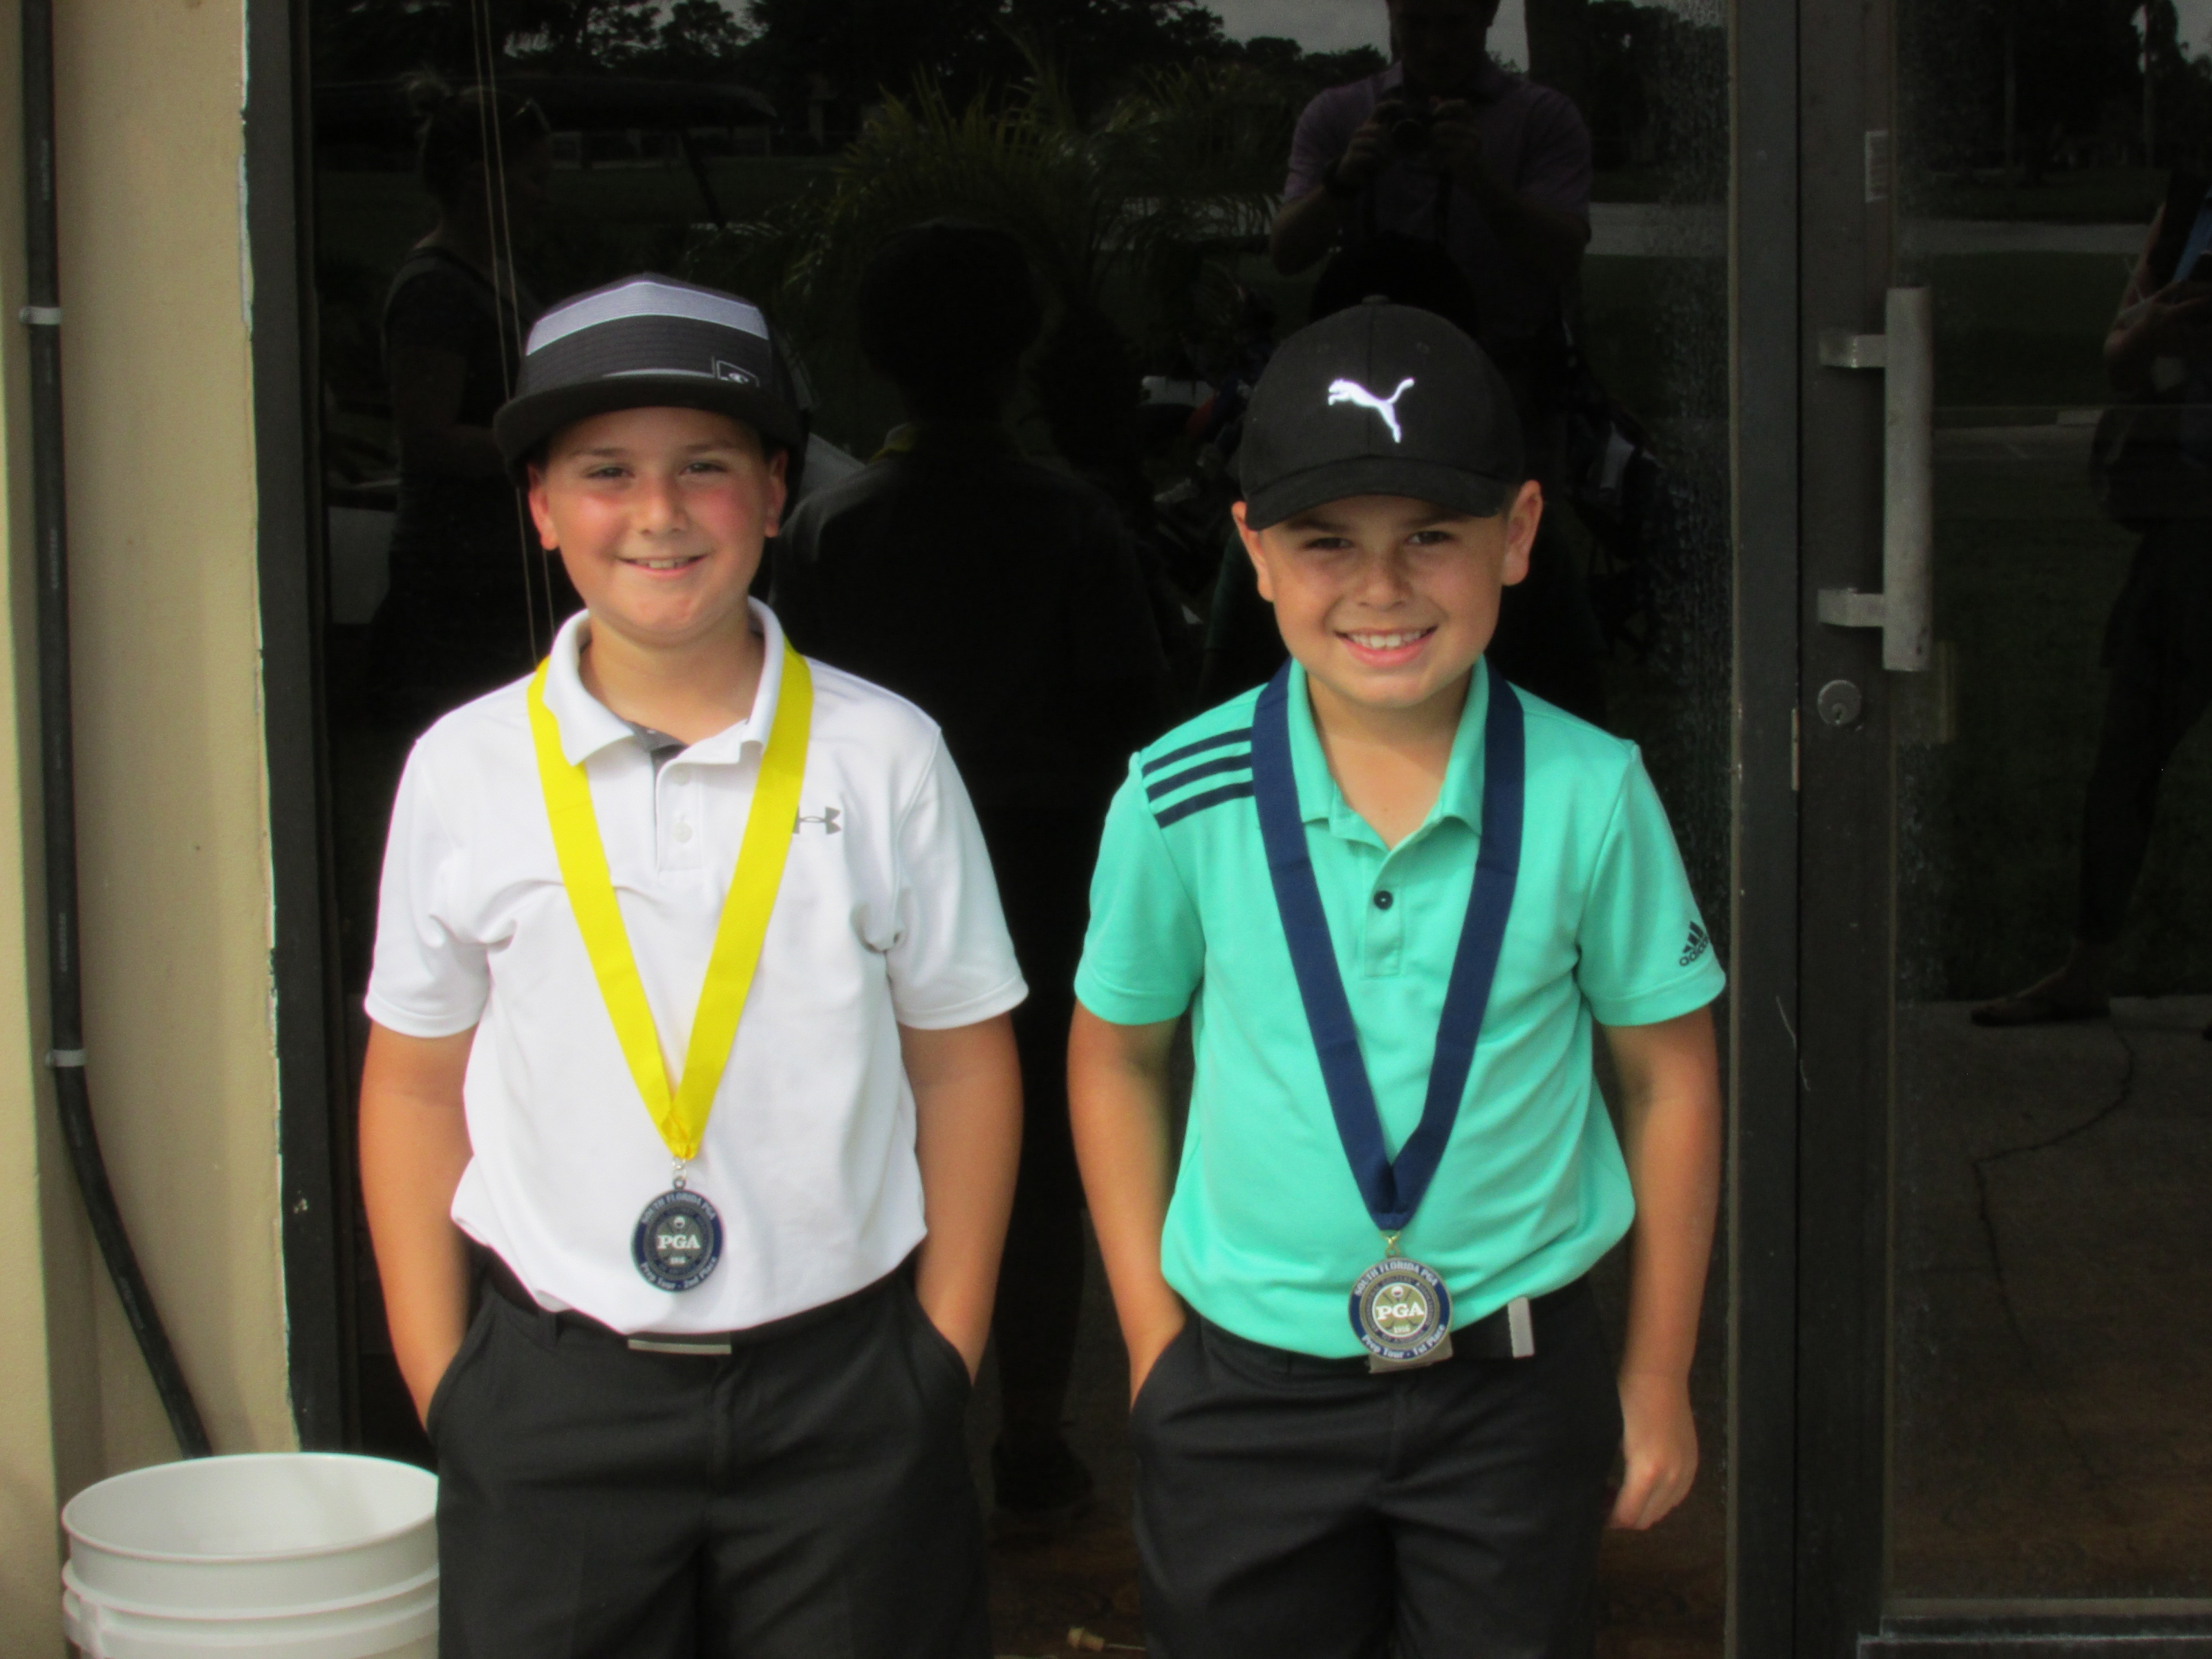 78 COMPETE IN THE FIRST PREP TOUR EVENT OF 2019